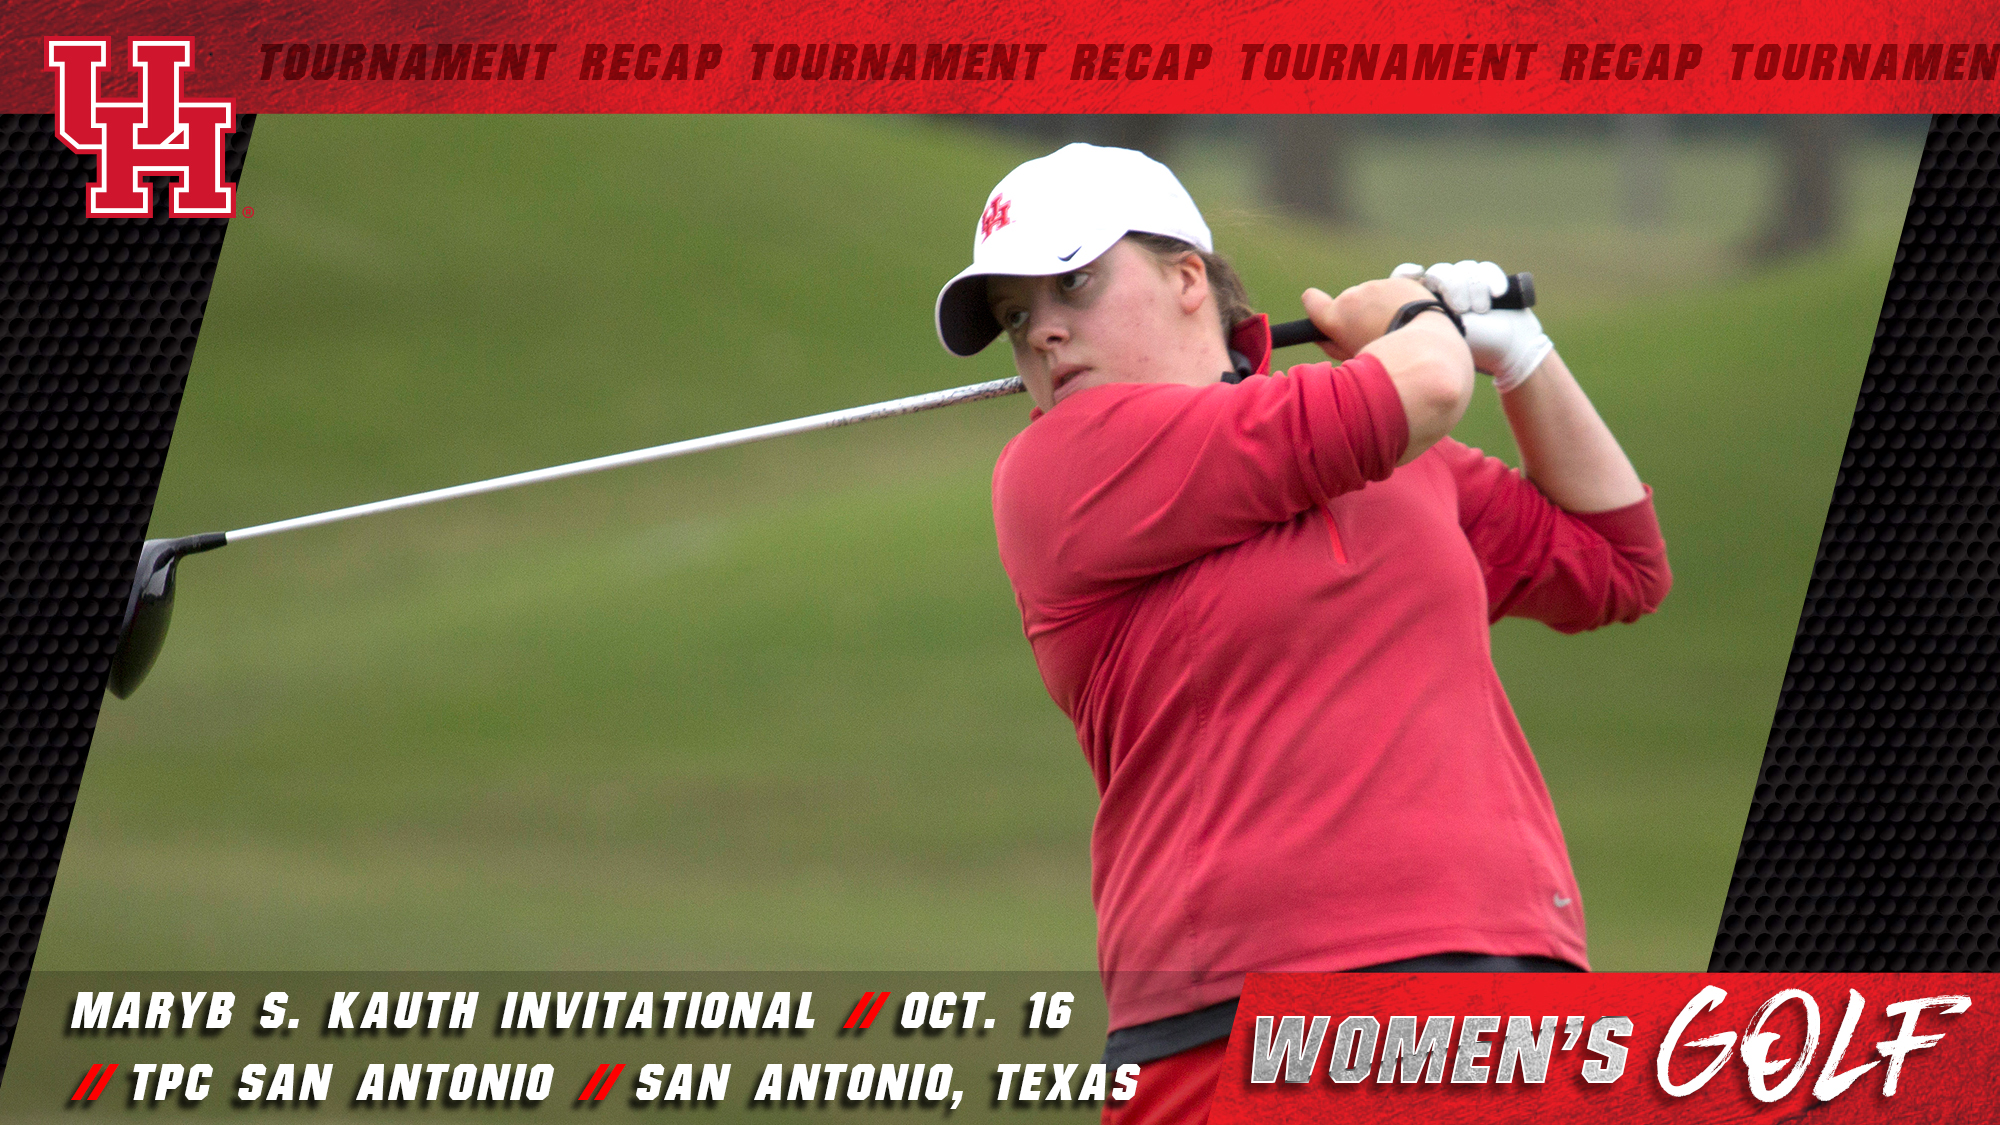 Houston Finishes Fourth at Maryb S  Kauth Invitational